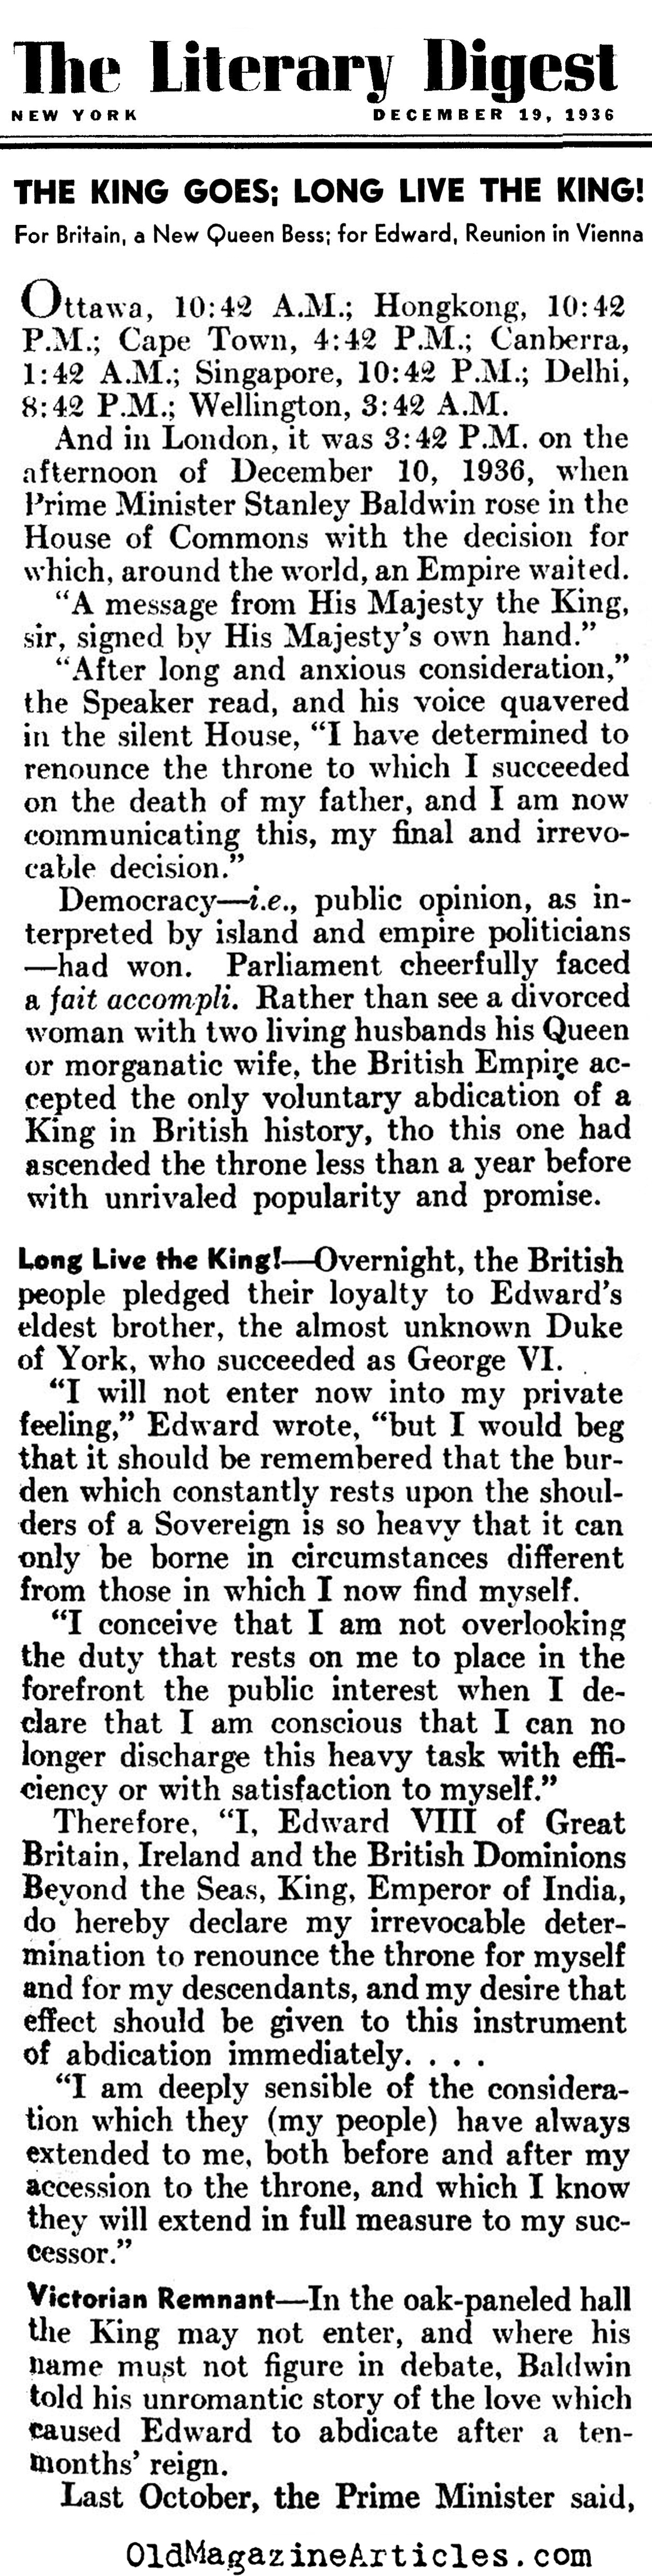 The Abdication (Literary Digest, 1936)